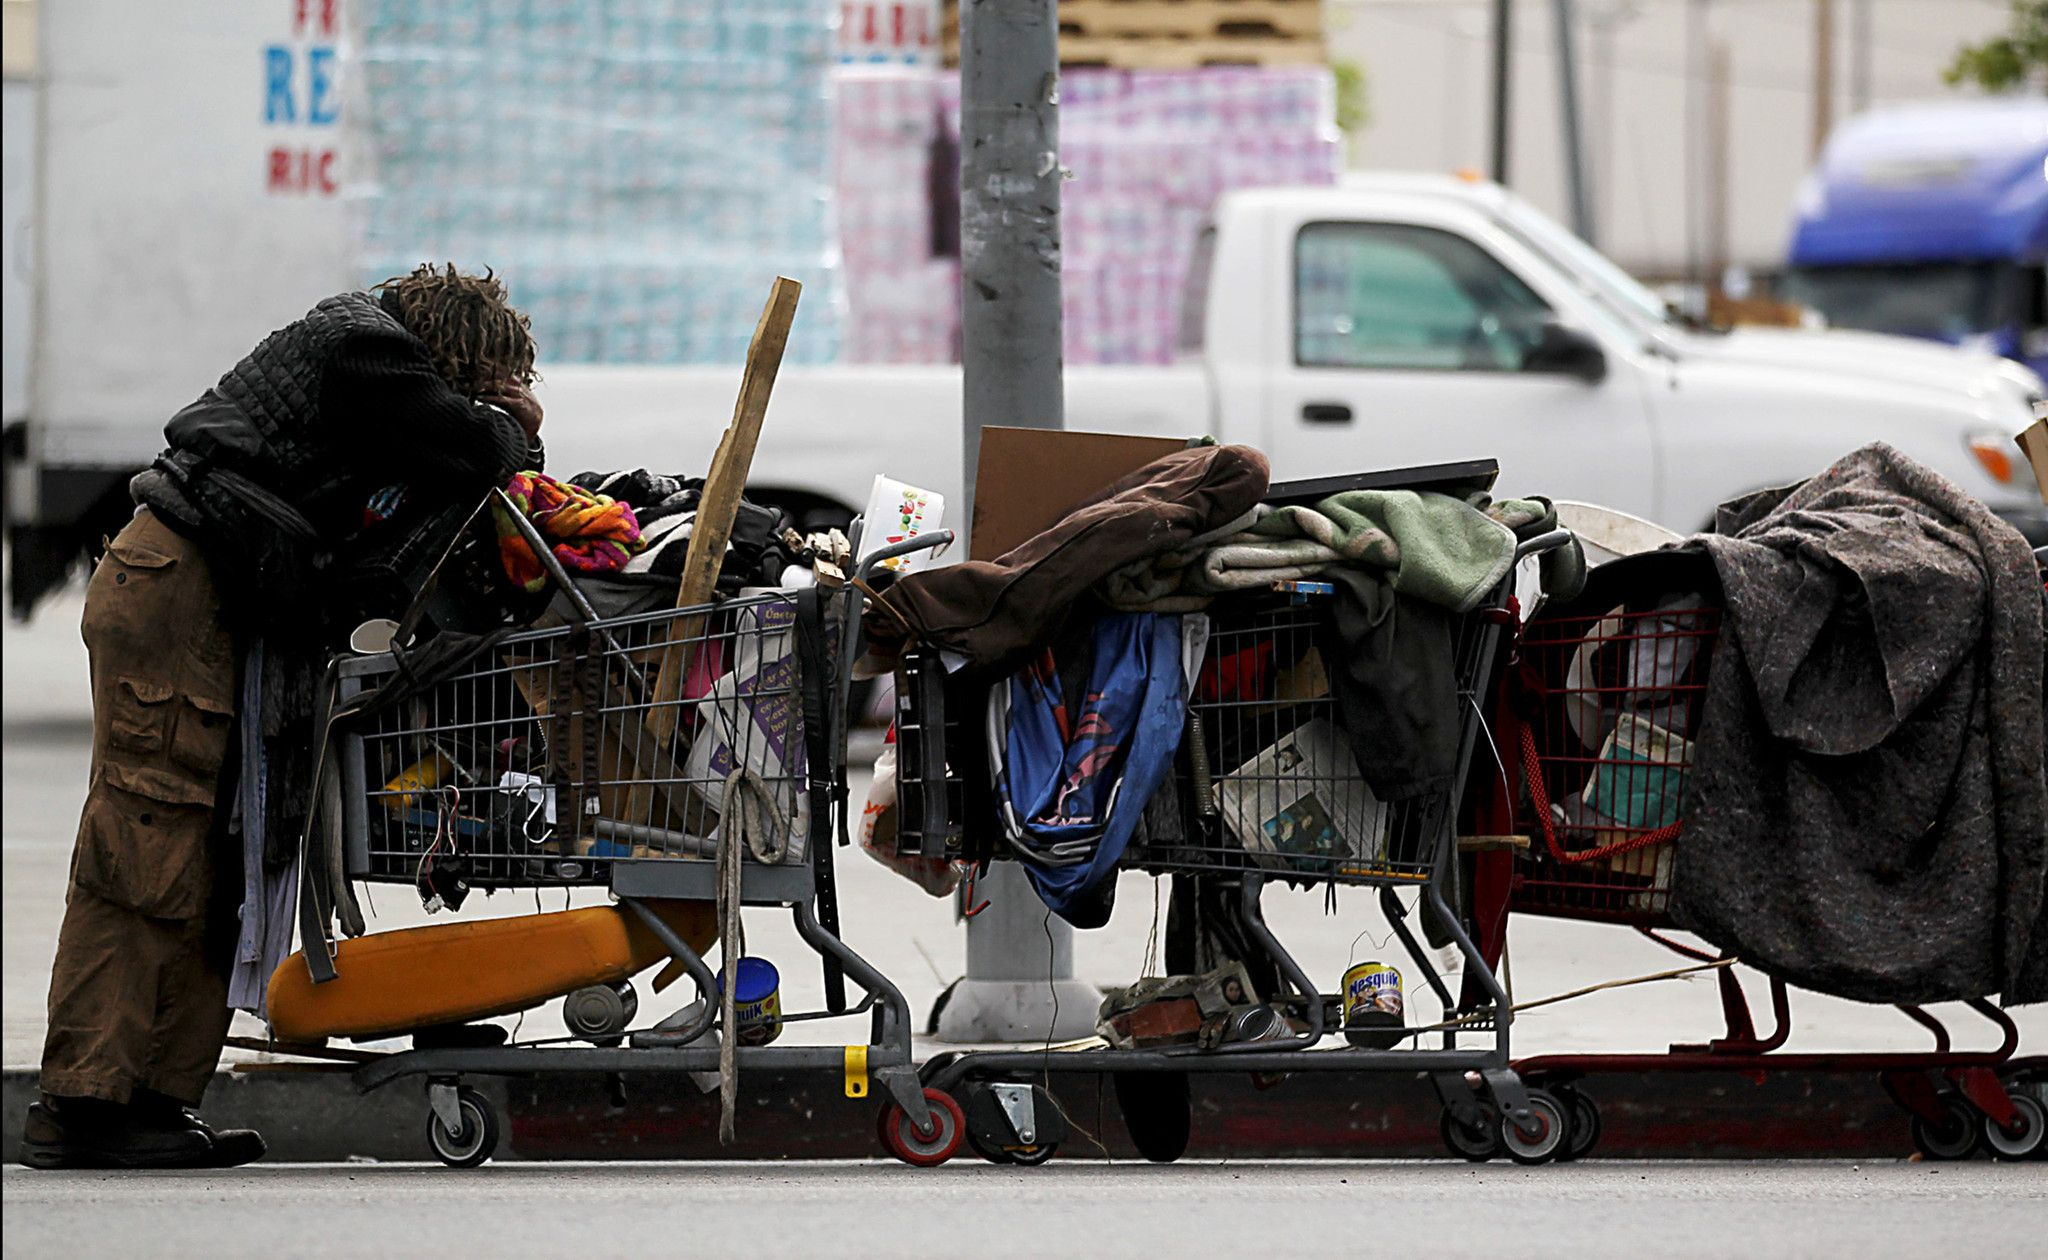 Los Angeles Inner City People Google Search Homeless People Homeless Person Homeless